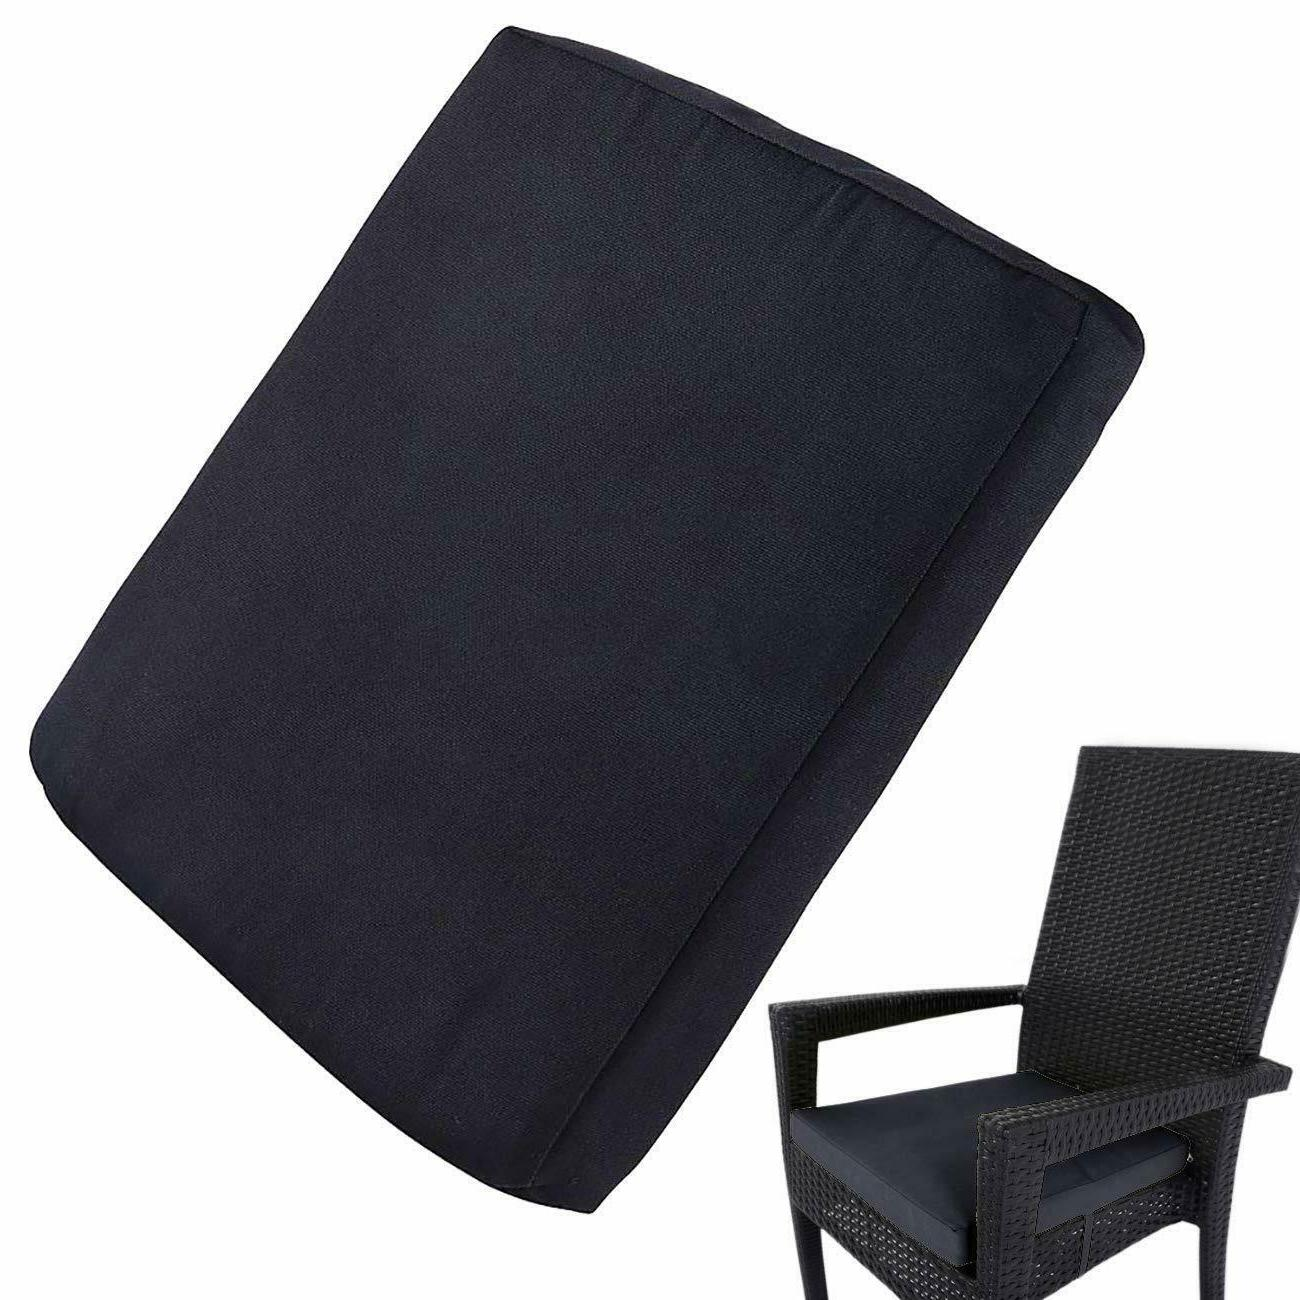 Home Outdoor Waterproof Chair Seat Pads/Cushions with Ties G